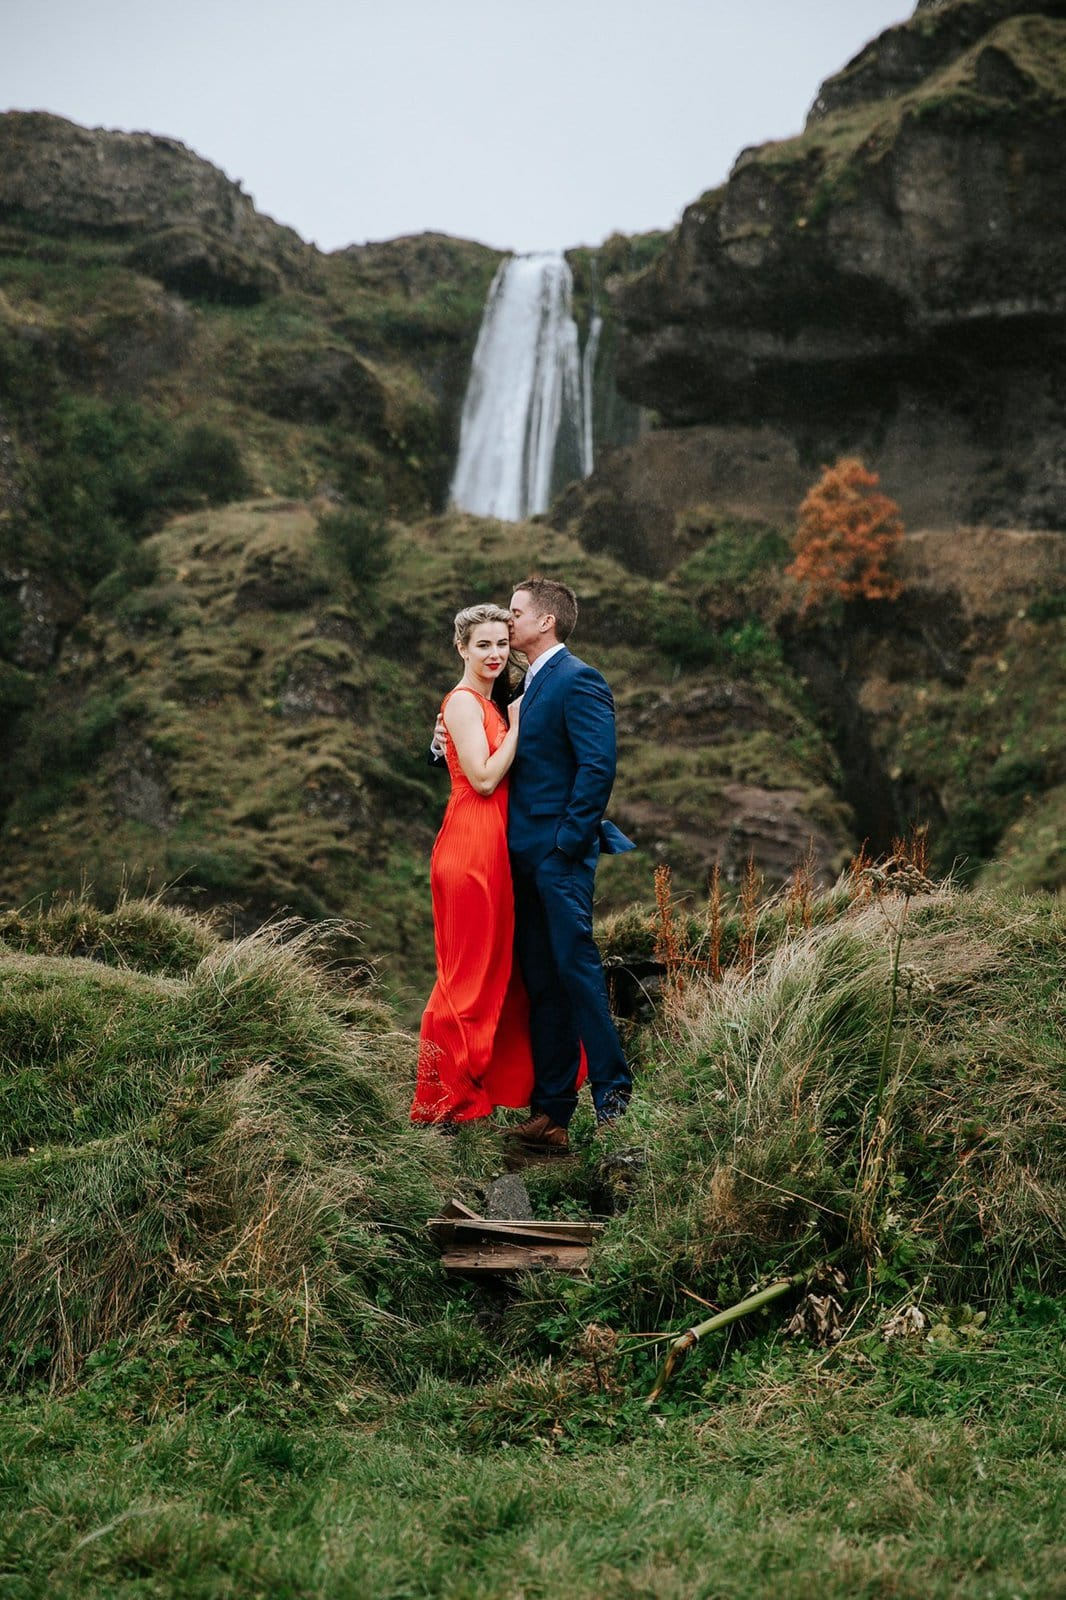 Intimate wedding in Iceland.